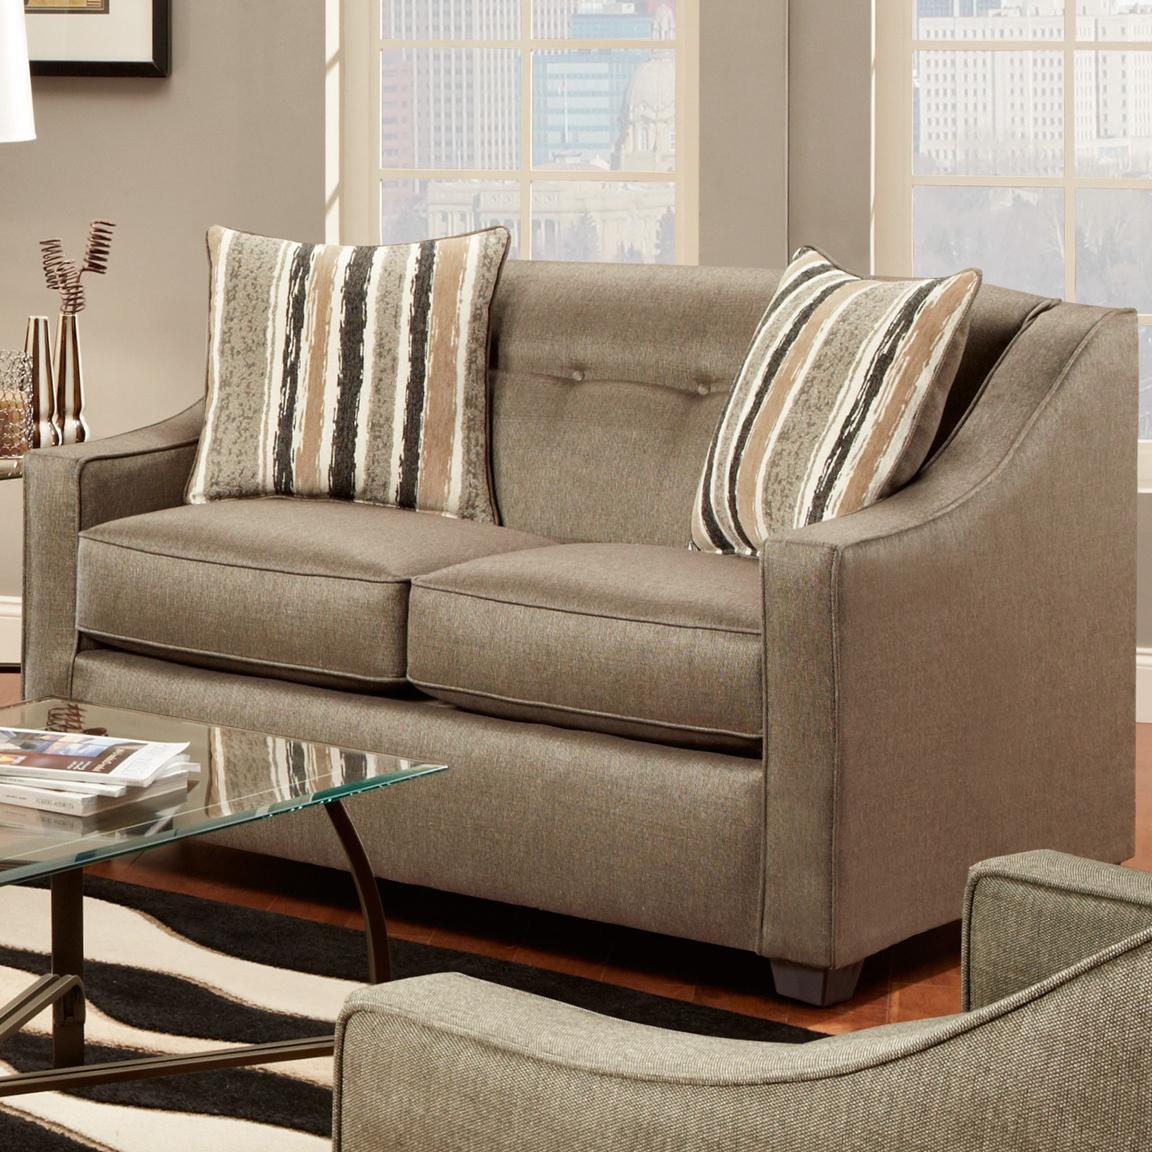 Washington Furniture Stoked Pewter Loveseat - Item Number: 5442-580